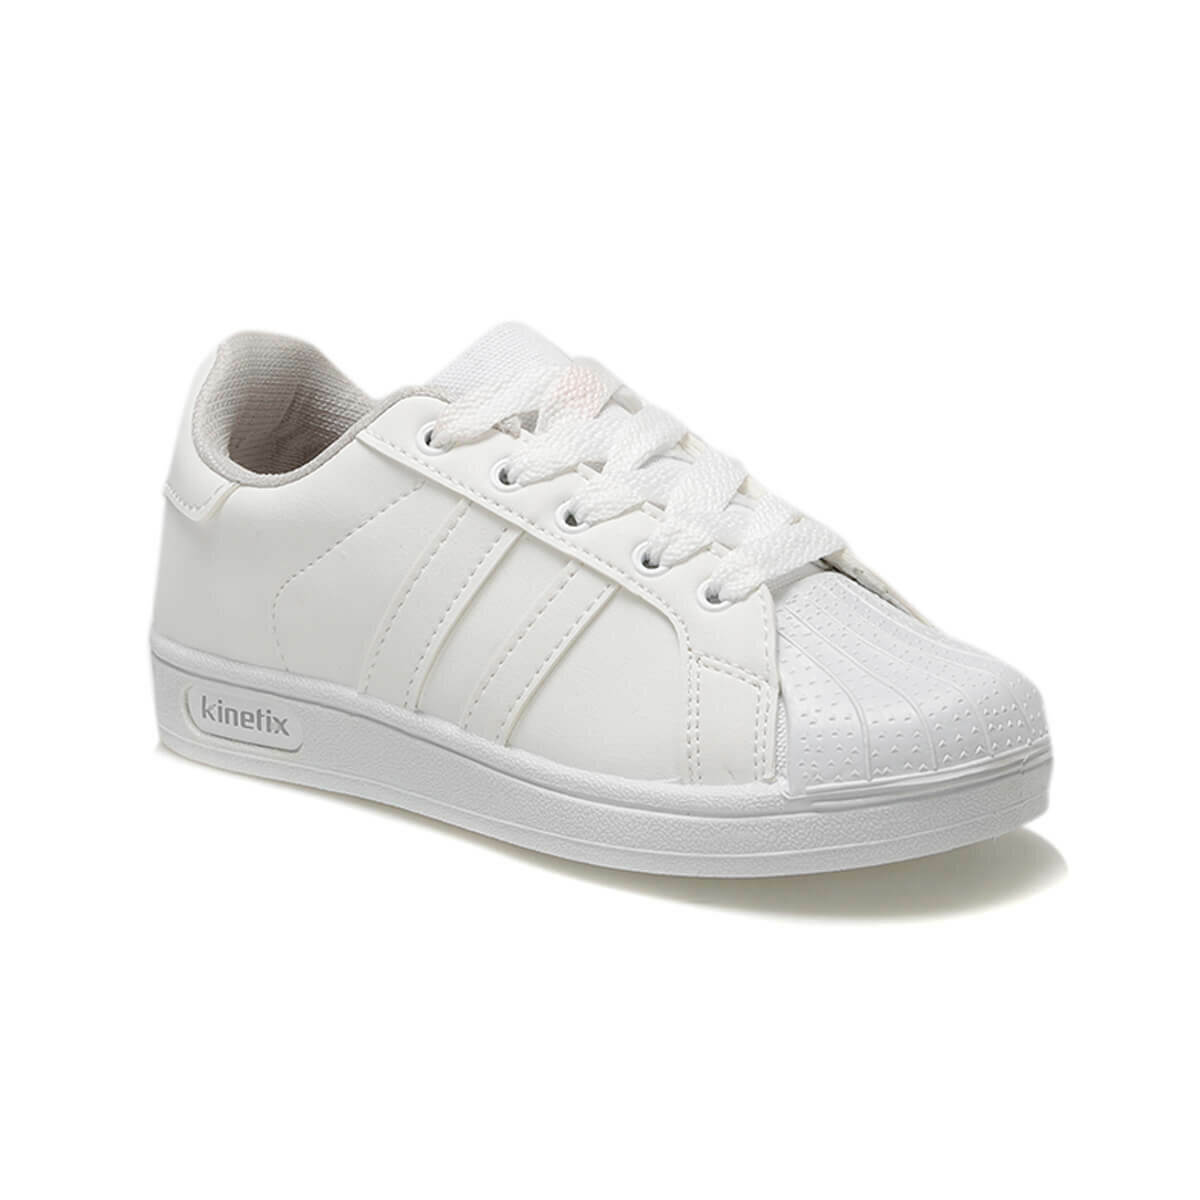 FLO RENDRO White Male Child Sneaker Shoes KINETIX